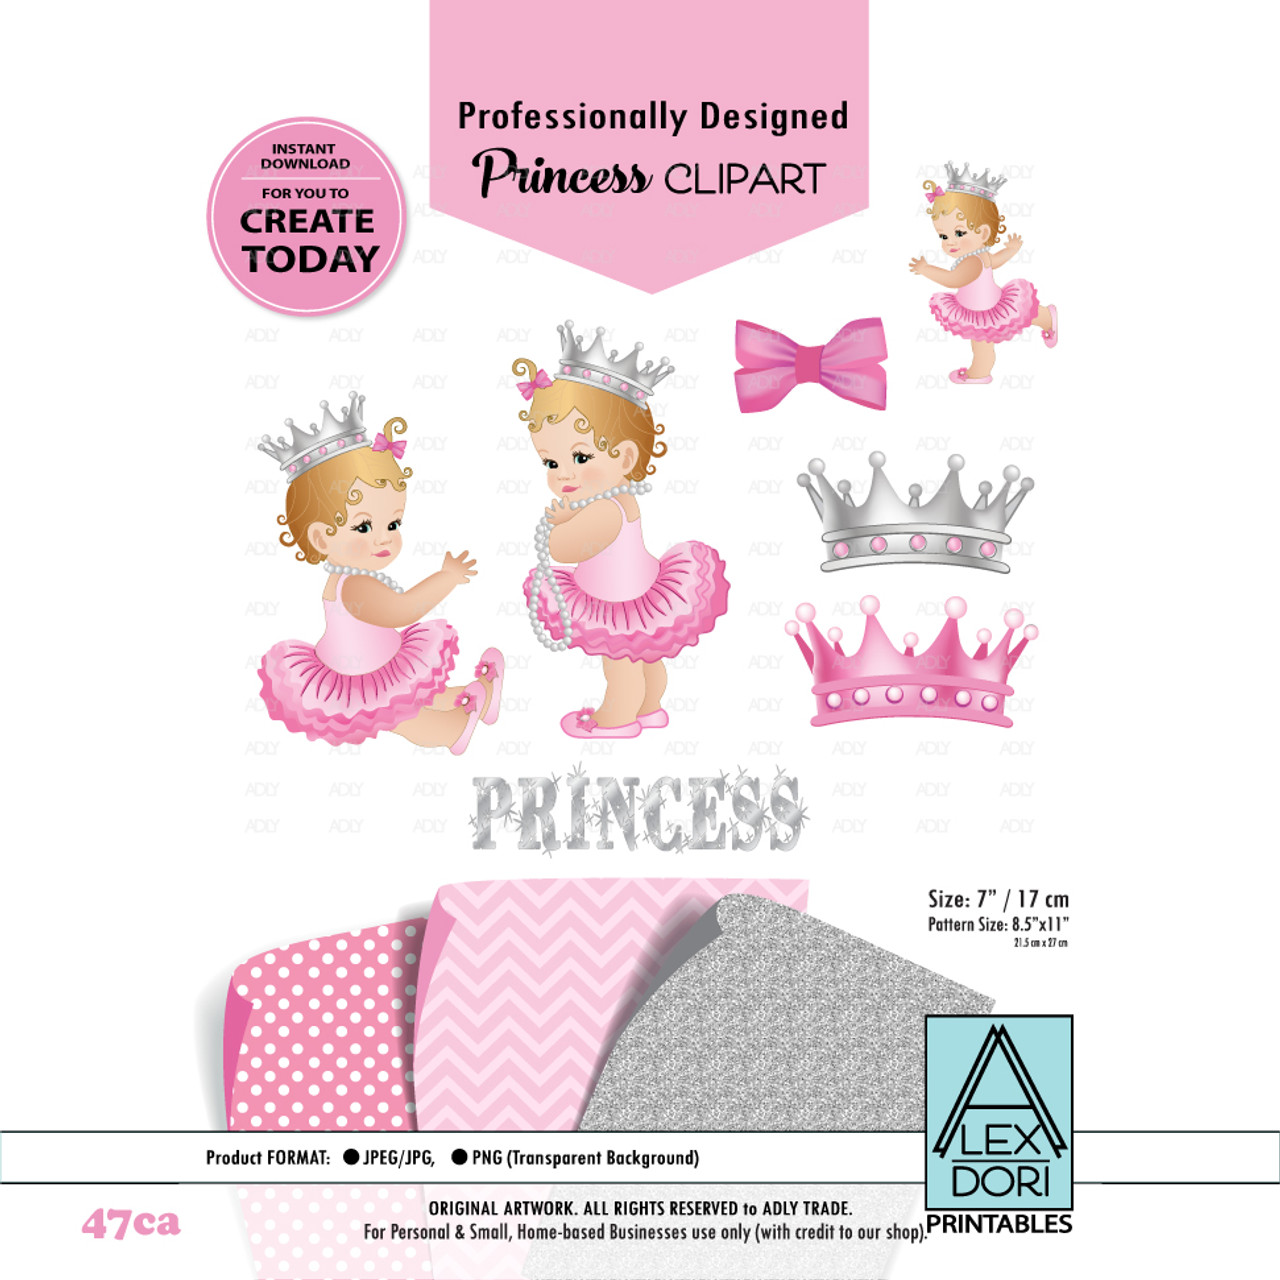 medium resolution of princess baby shower digital clipart pink and gray clipart royal baby shower crowns tiara clipart adly invitations and digital party designs